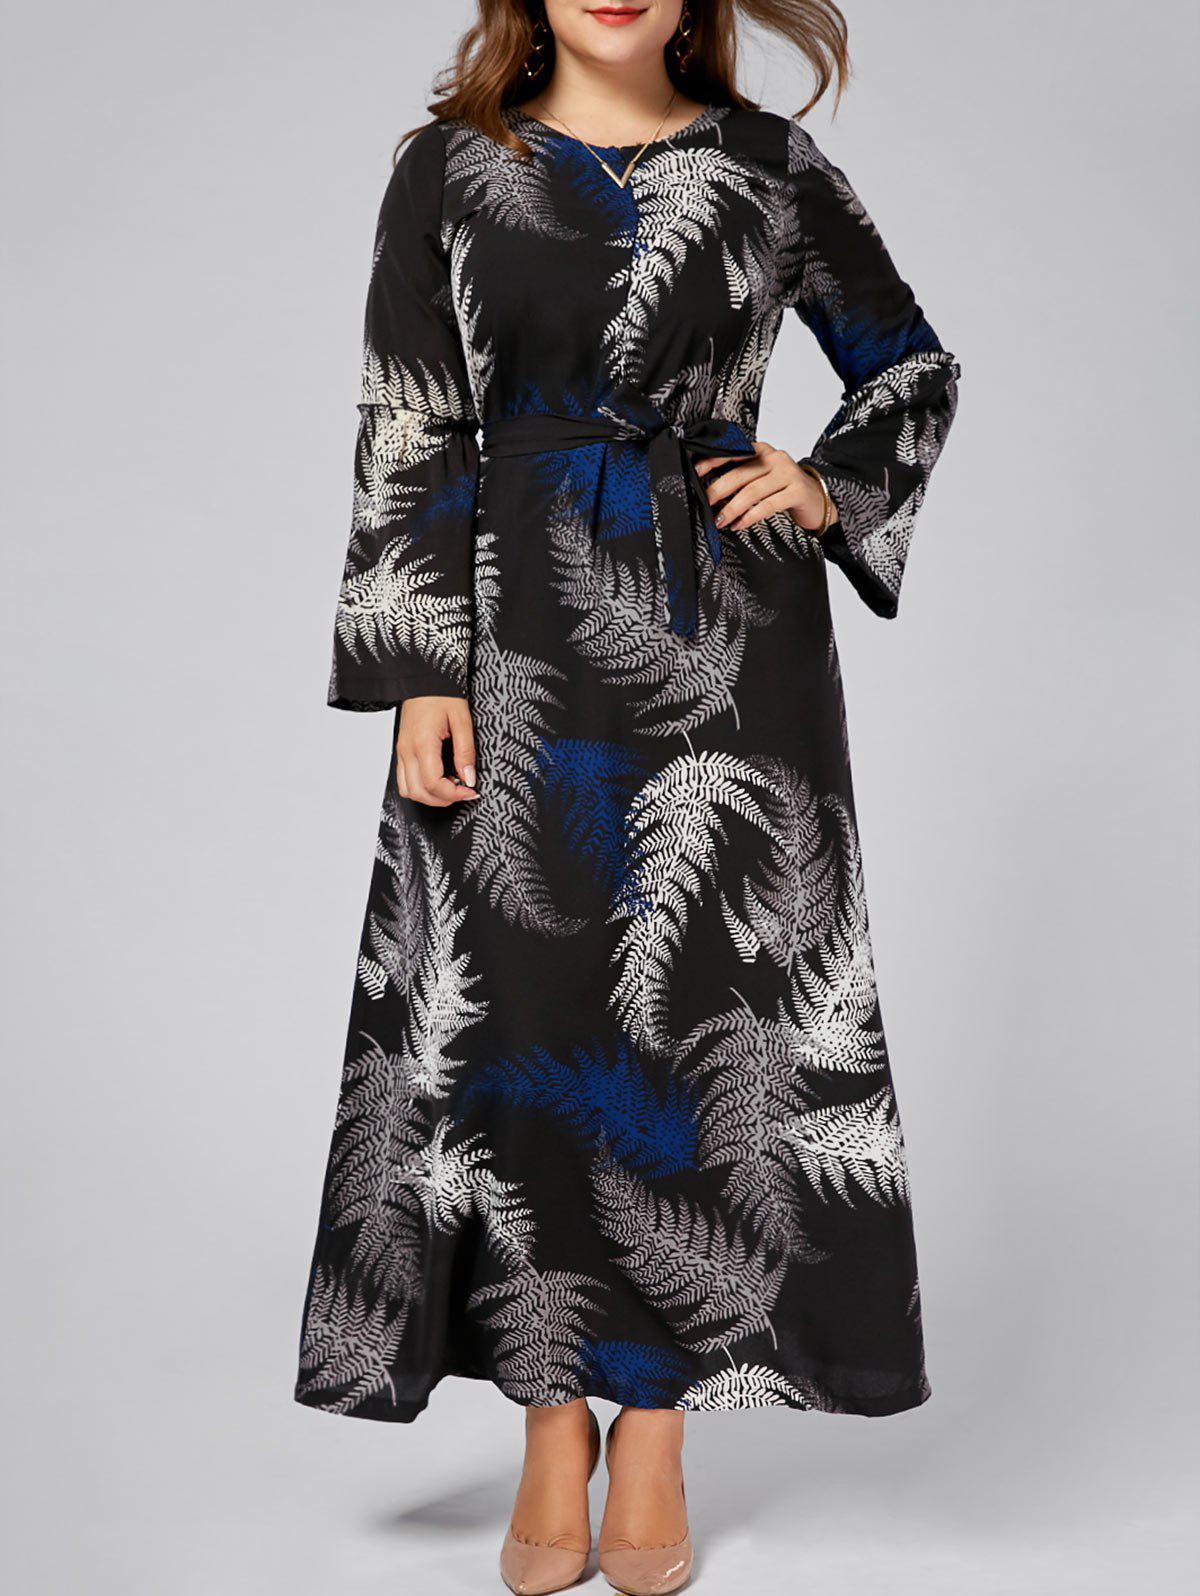 Leaves Print Plus Size Chiffon Long Sleeve Maxi DressWOMEN<br><br>Size: 7XL; Color: BLACK; Style: Bohemian; Material: Cotton Blend,Polyester; Fabric Type: Chiffon; Silhouette: Beach; Dresses Length: Ankle-Length; Neckline: Round Collar; Sleeve Type: Flare Sleeve; Sleeve Length: Long Sleeves; Pattern Type: Plant,Print; With Belt: Yes; Season: Fall,Spring; Weight: 0.3500kg; Package Contents: 1 x Dress 1 x Belt;